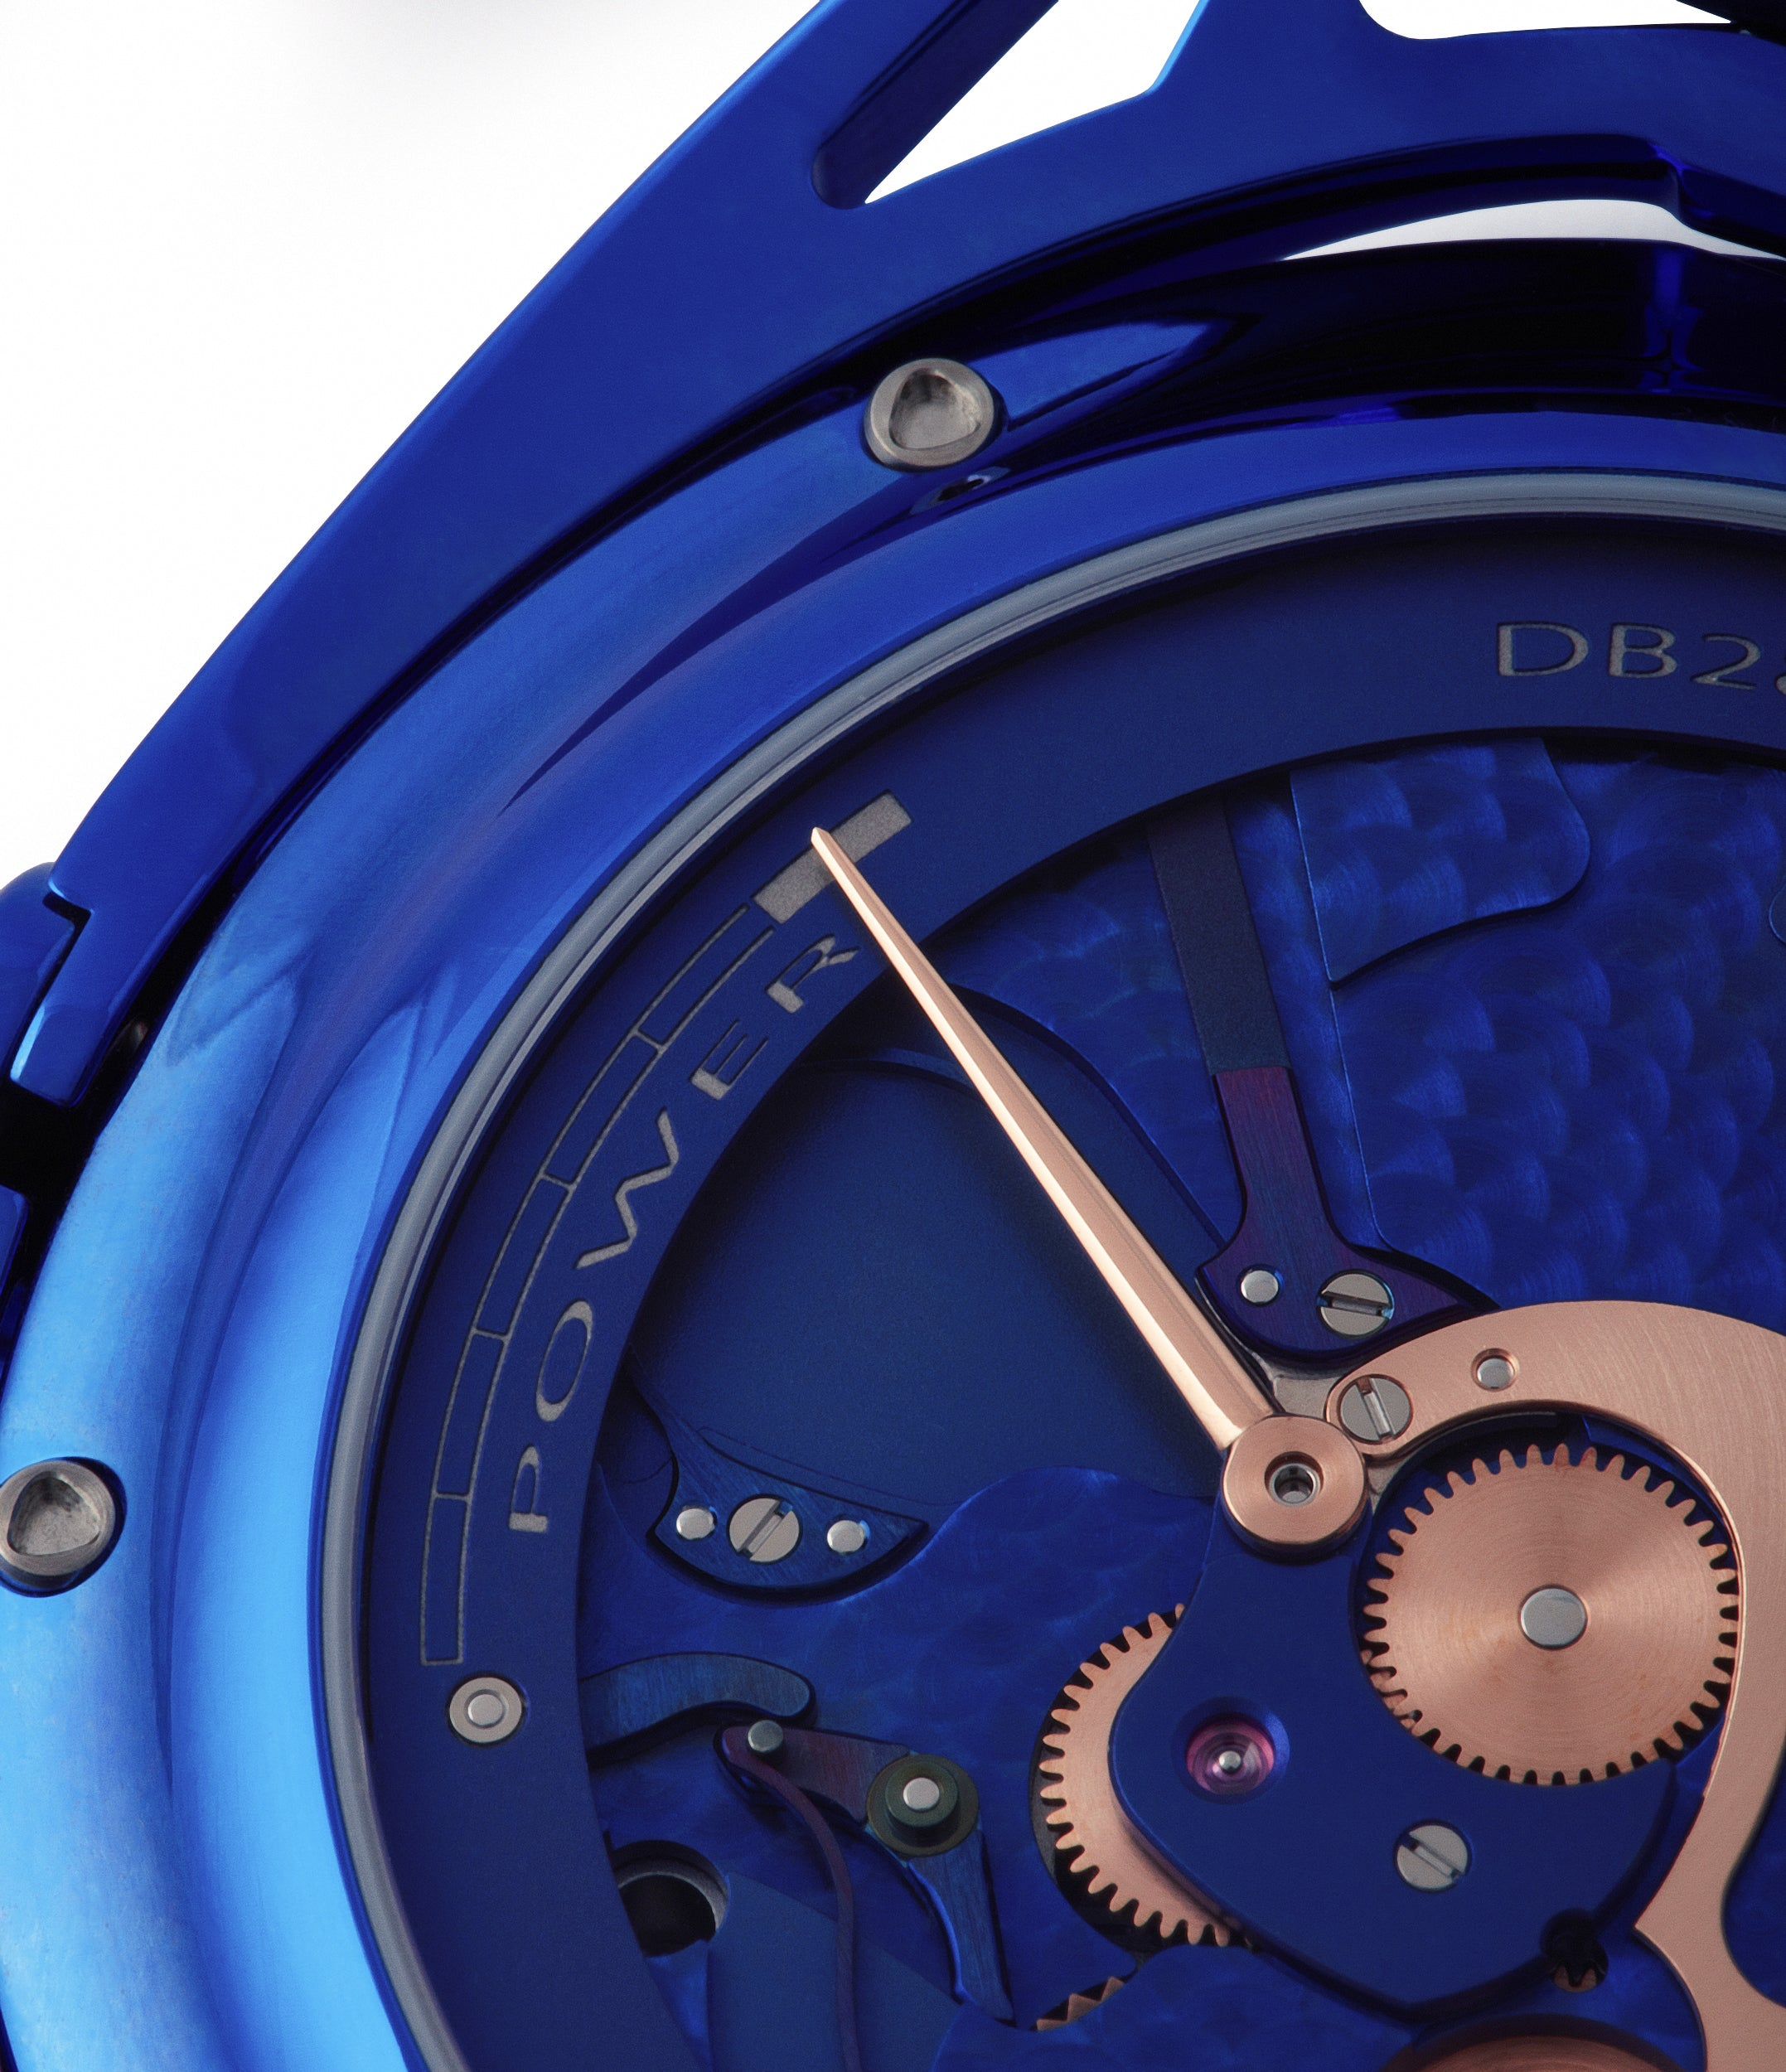 blue movement De Bethune DB28 Kind of Blue titanium rare limited edition independent watchmaker for sale at A Collected Man London UK specilaist of rare watches